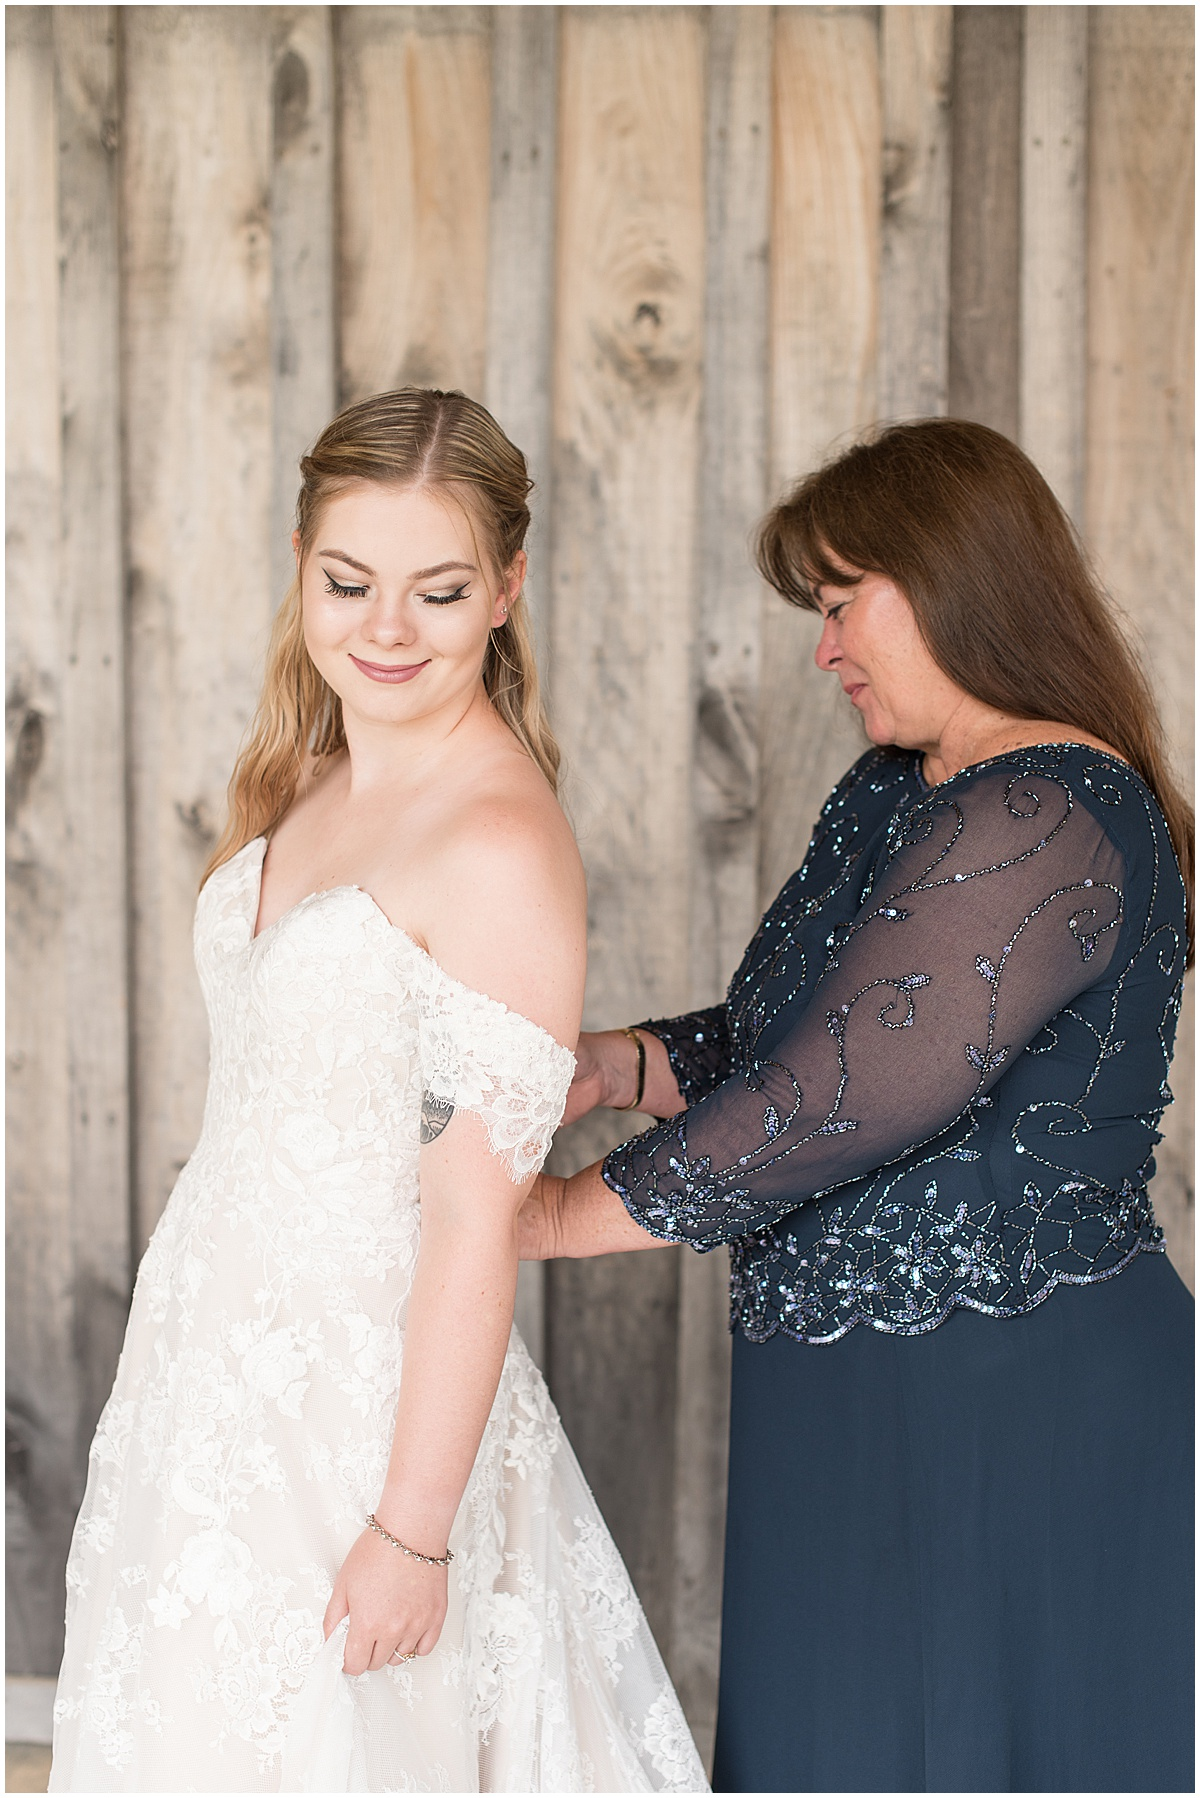 Bride getting ready for wedding at Whippoorwill Hill in Bloomington, Indiana